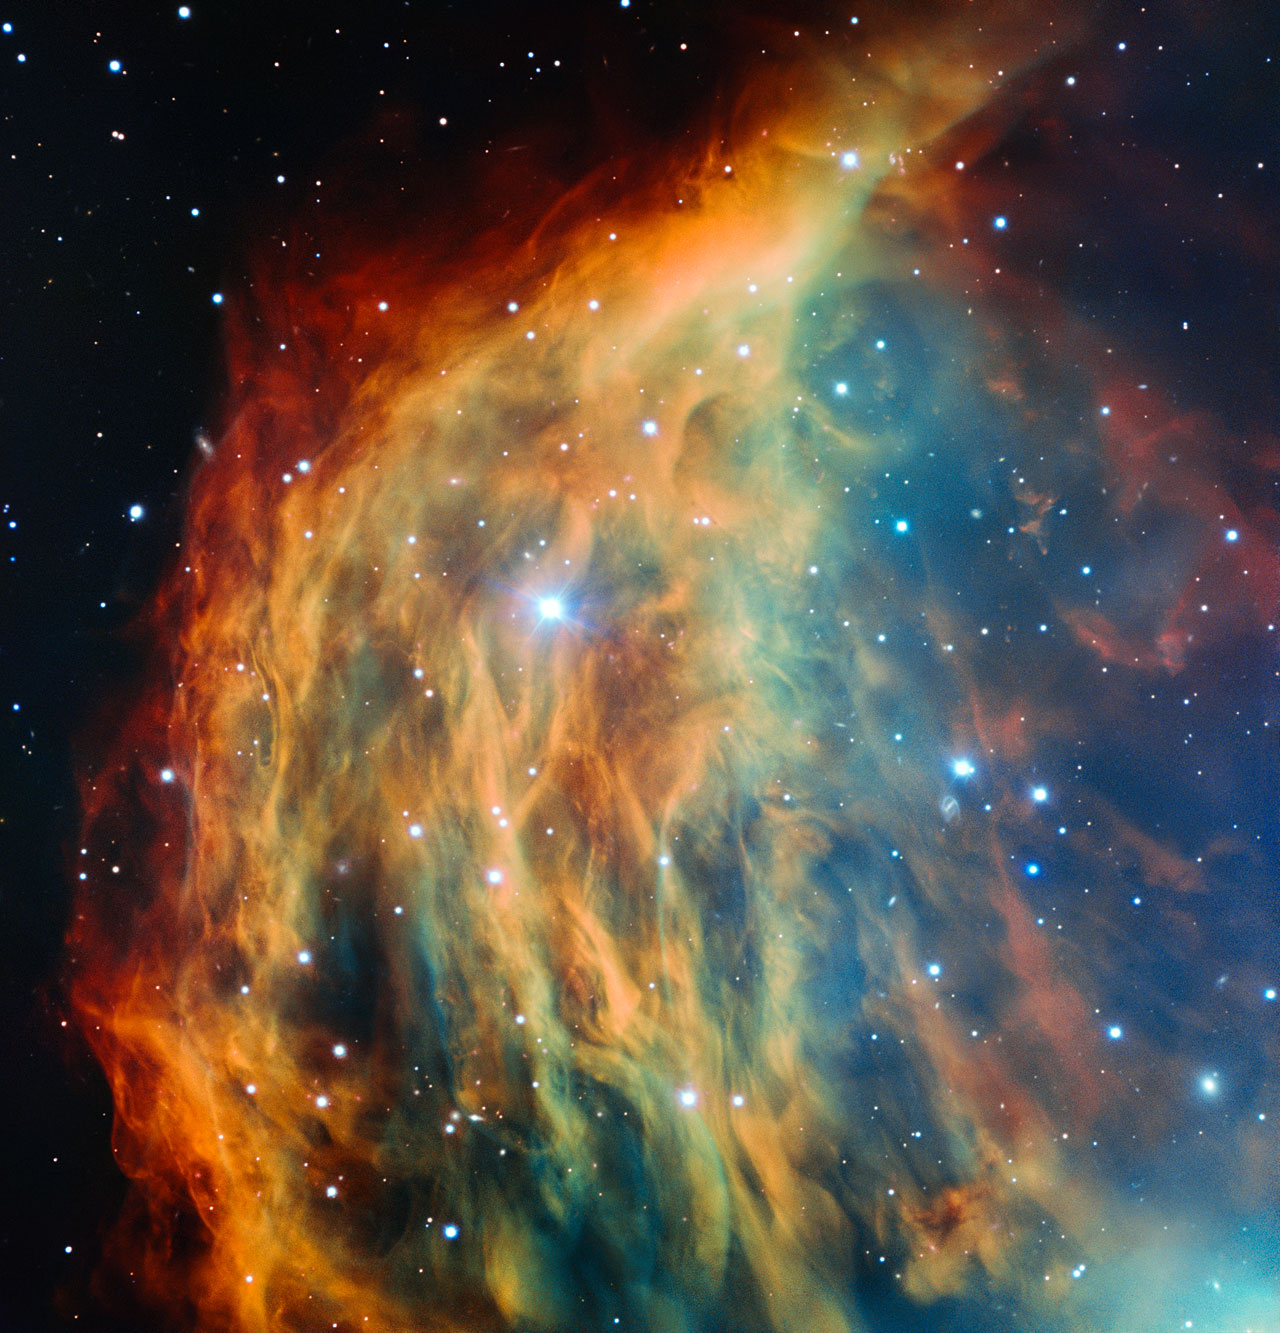 Best Space Photos of the Week - May 23, 2015